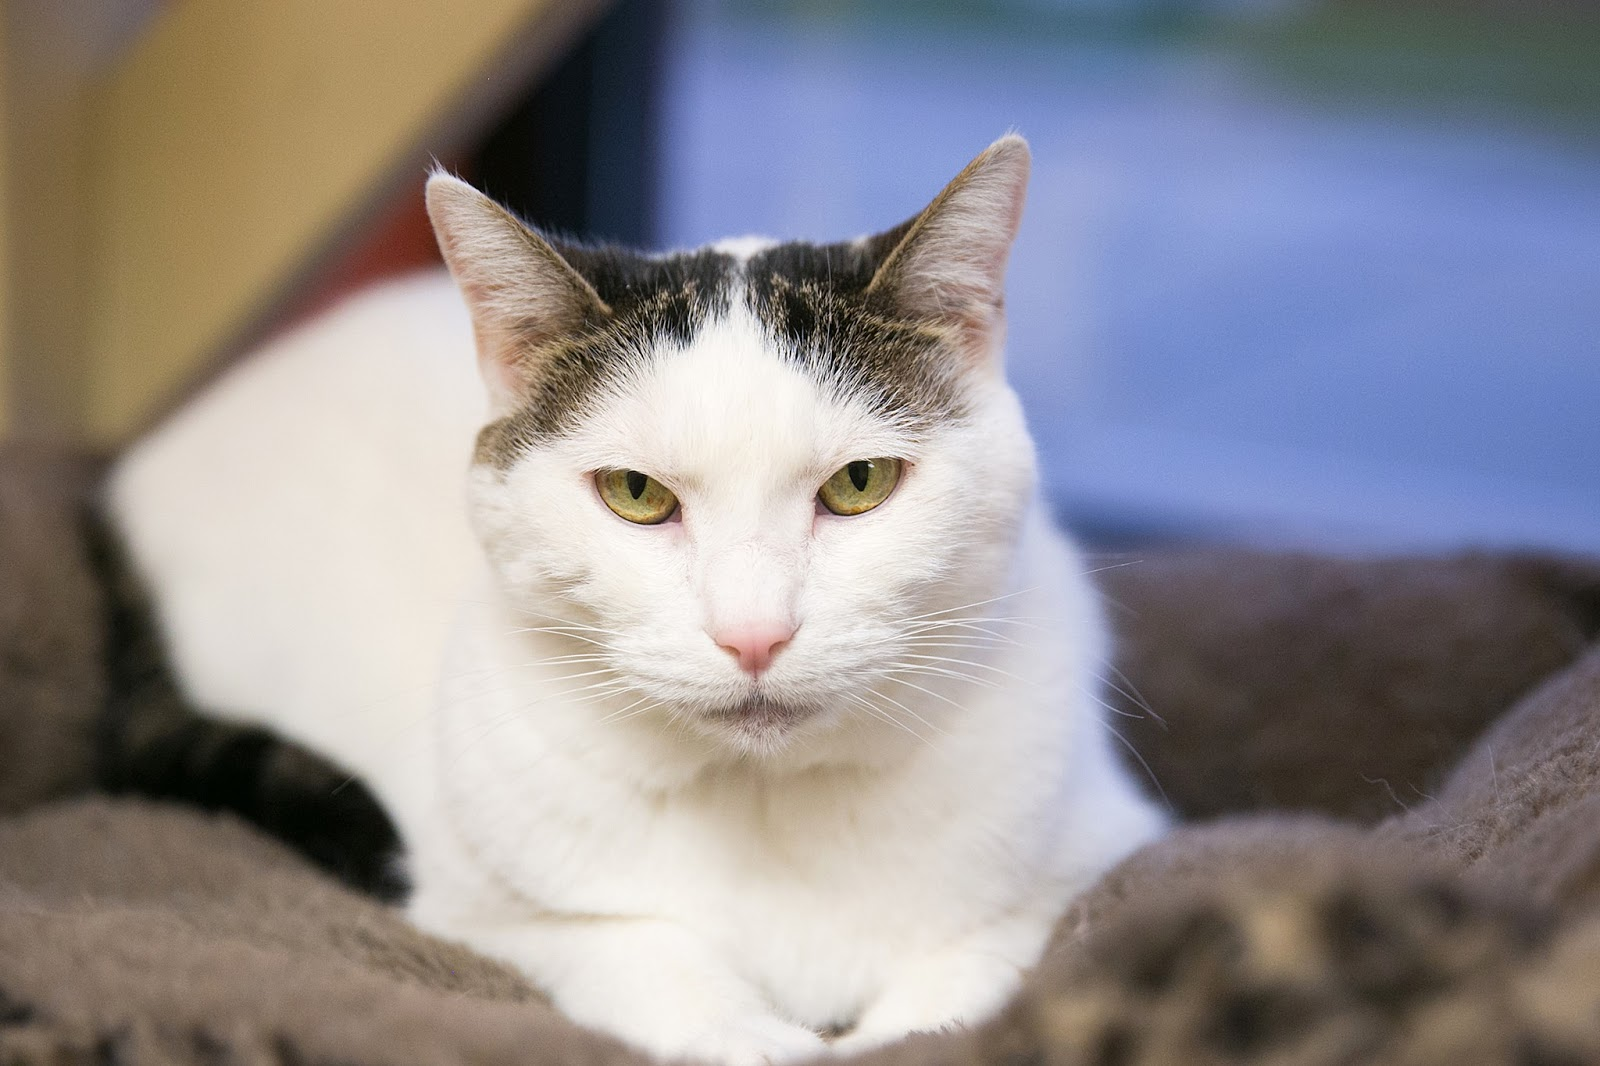 Feline Rescue Cat Tales: Where do our cats come from?